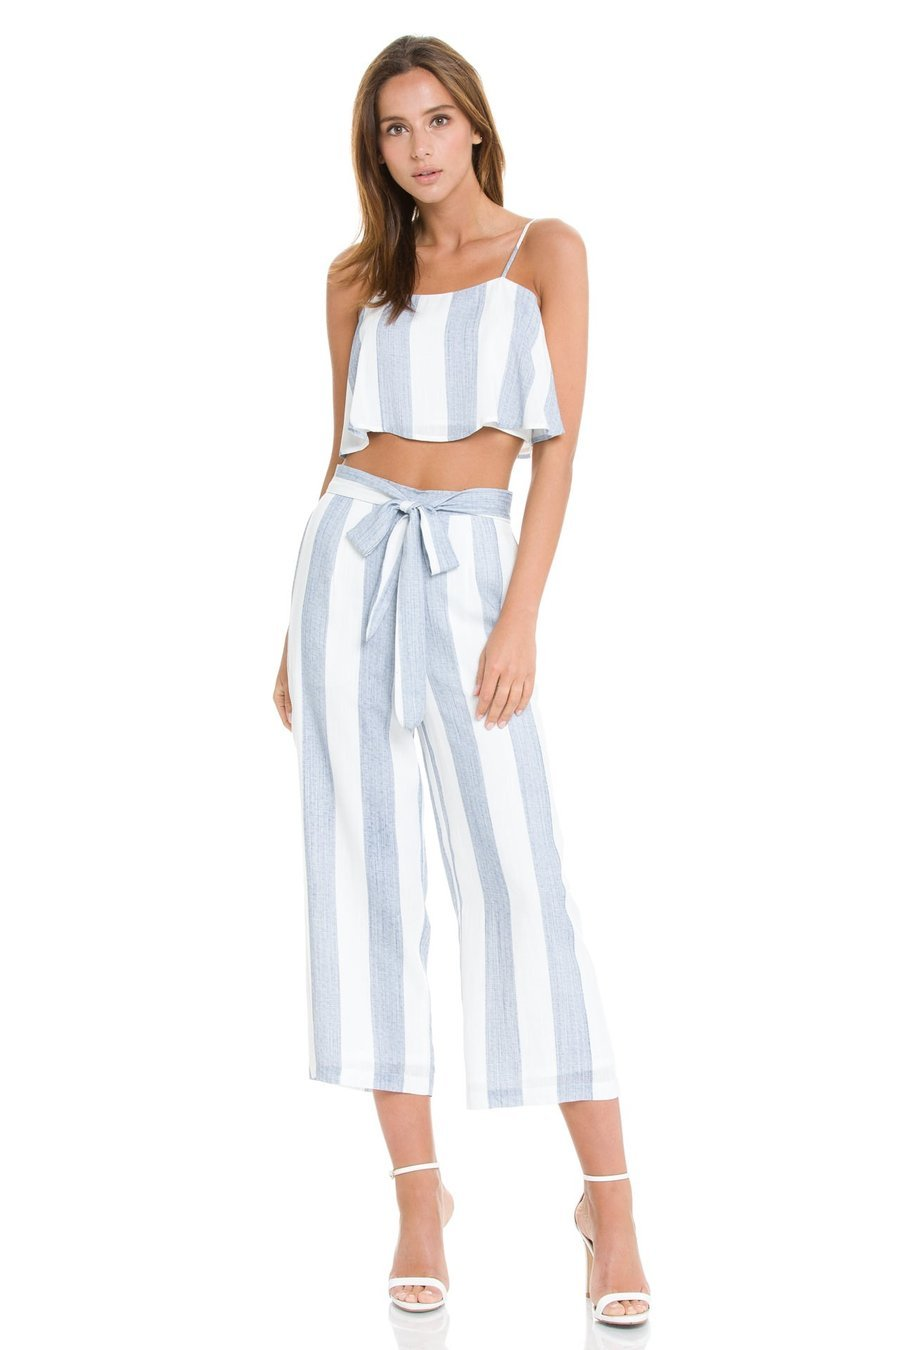 Striped Paperbag Pants - RishWish